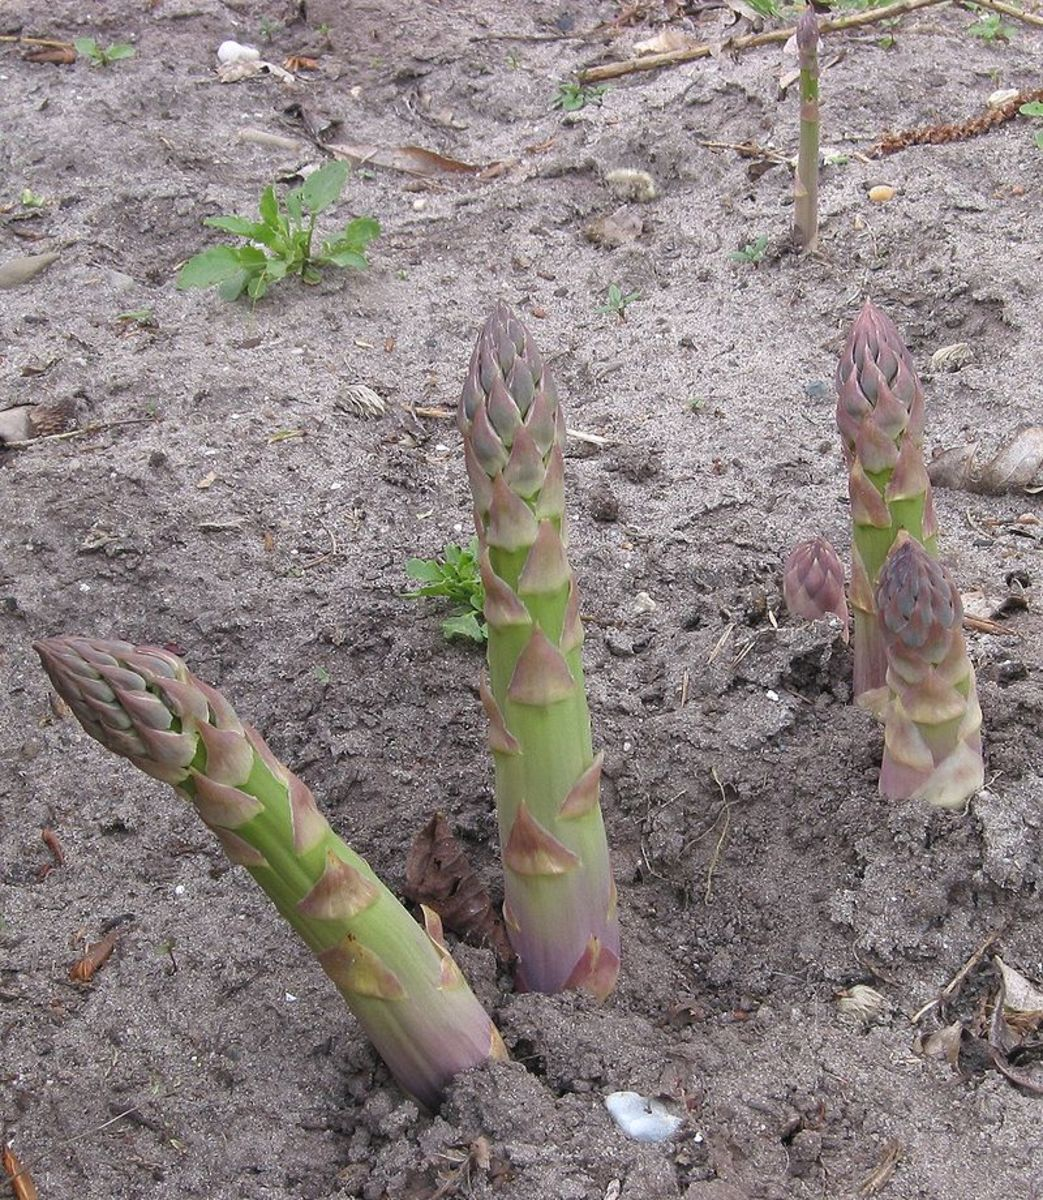 Harvest spears that are 8 inches tall and as thick as your finger.